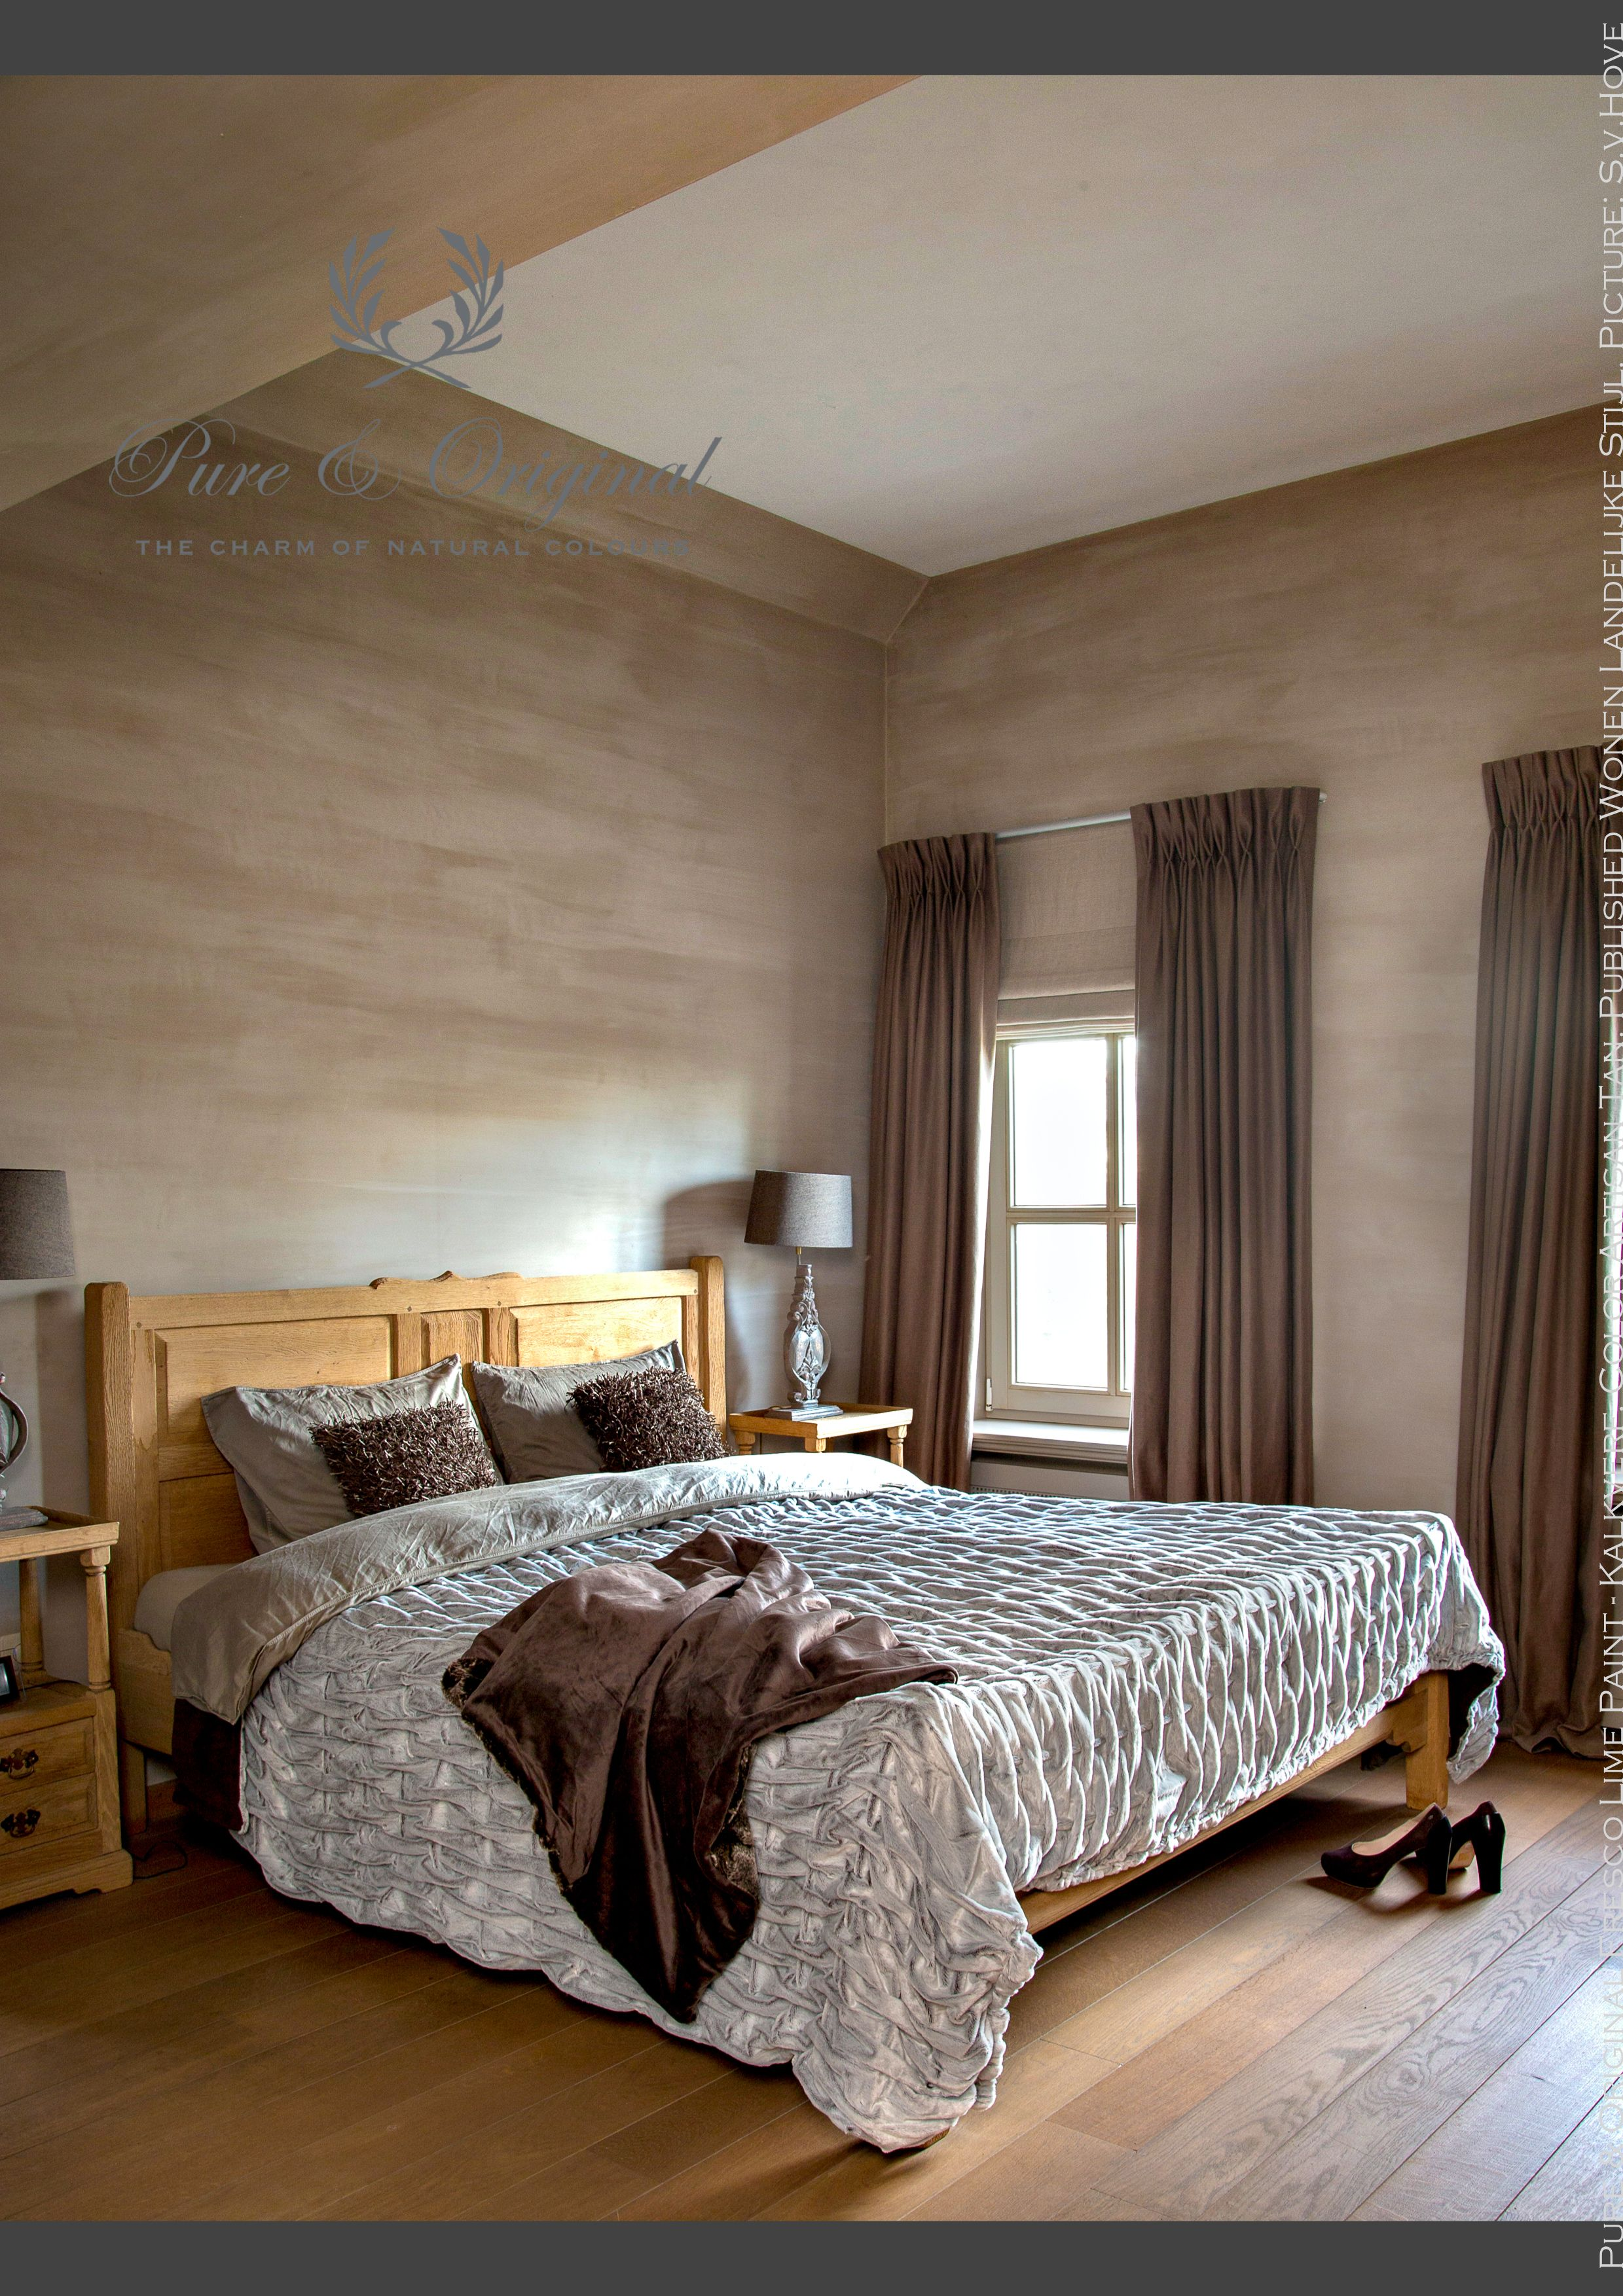 The official website of | Lime paint, Bedrooms and Interiors